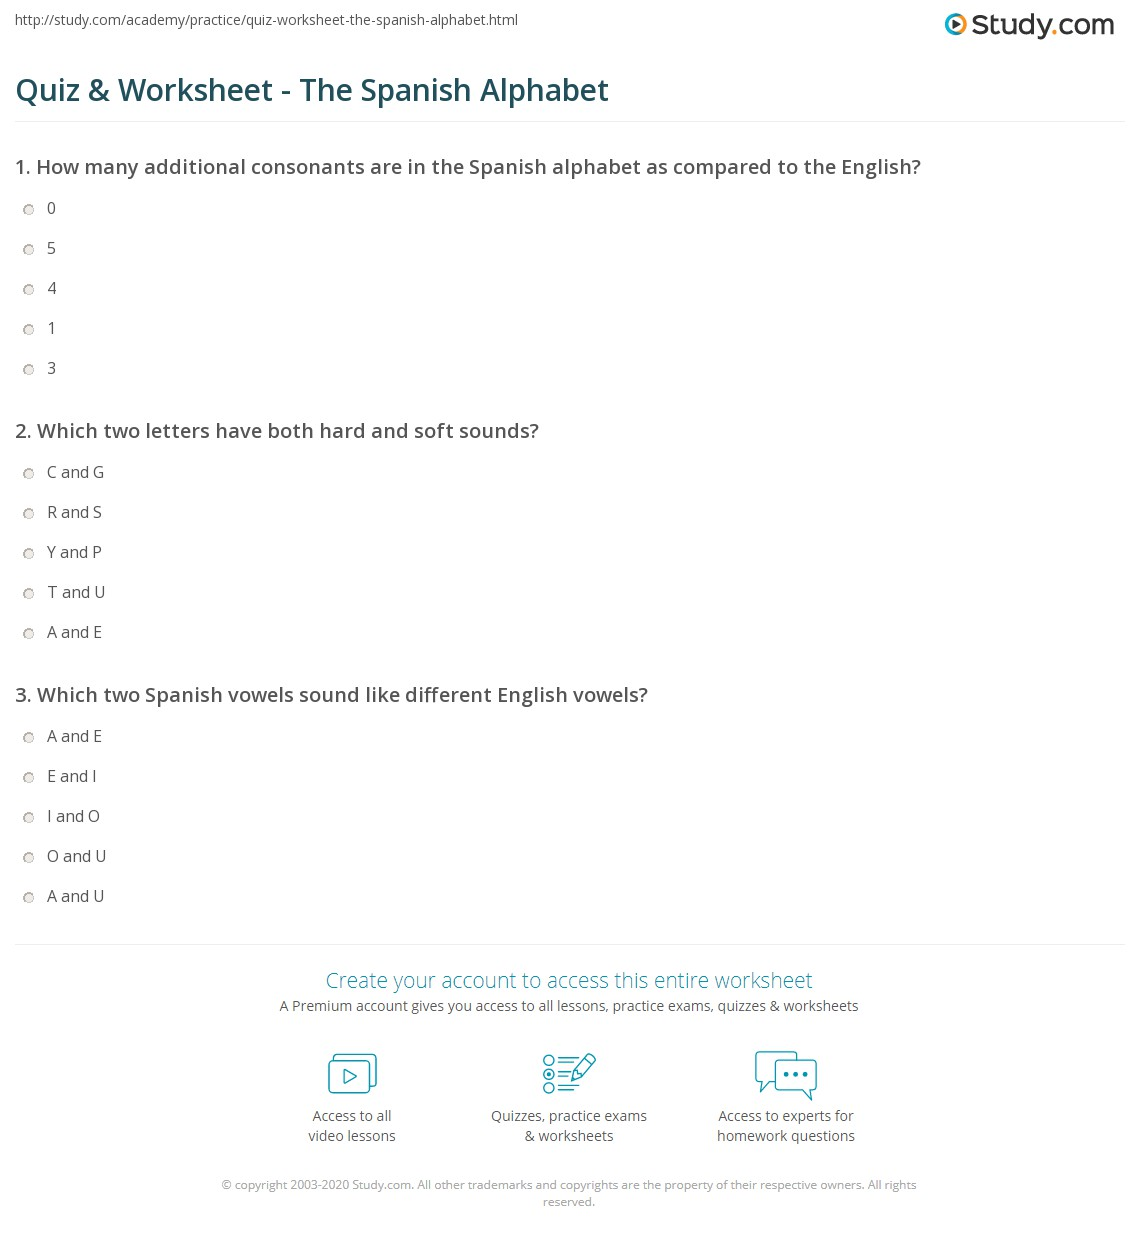 Quiz worksheet the spanish alphabet study print the full spanish alphabet pronunciation audio worksheet m4hsunfo